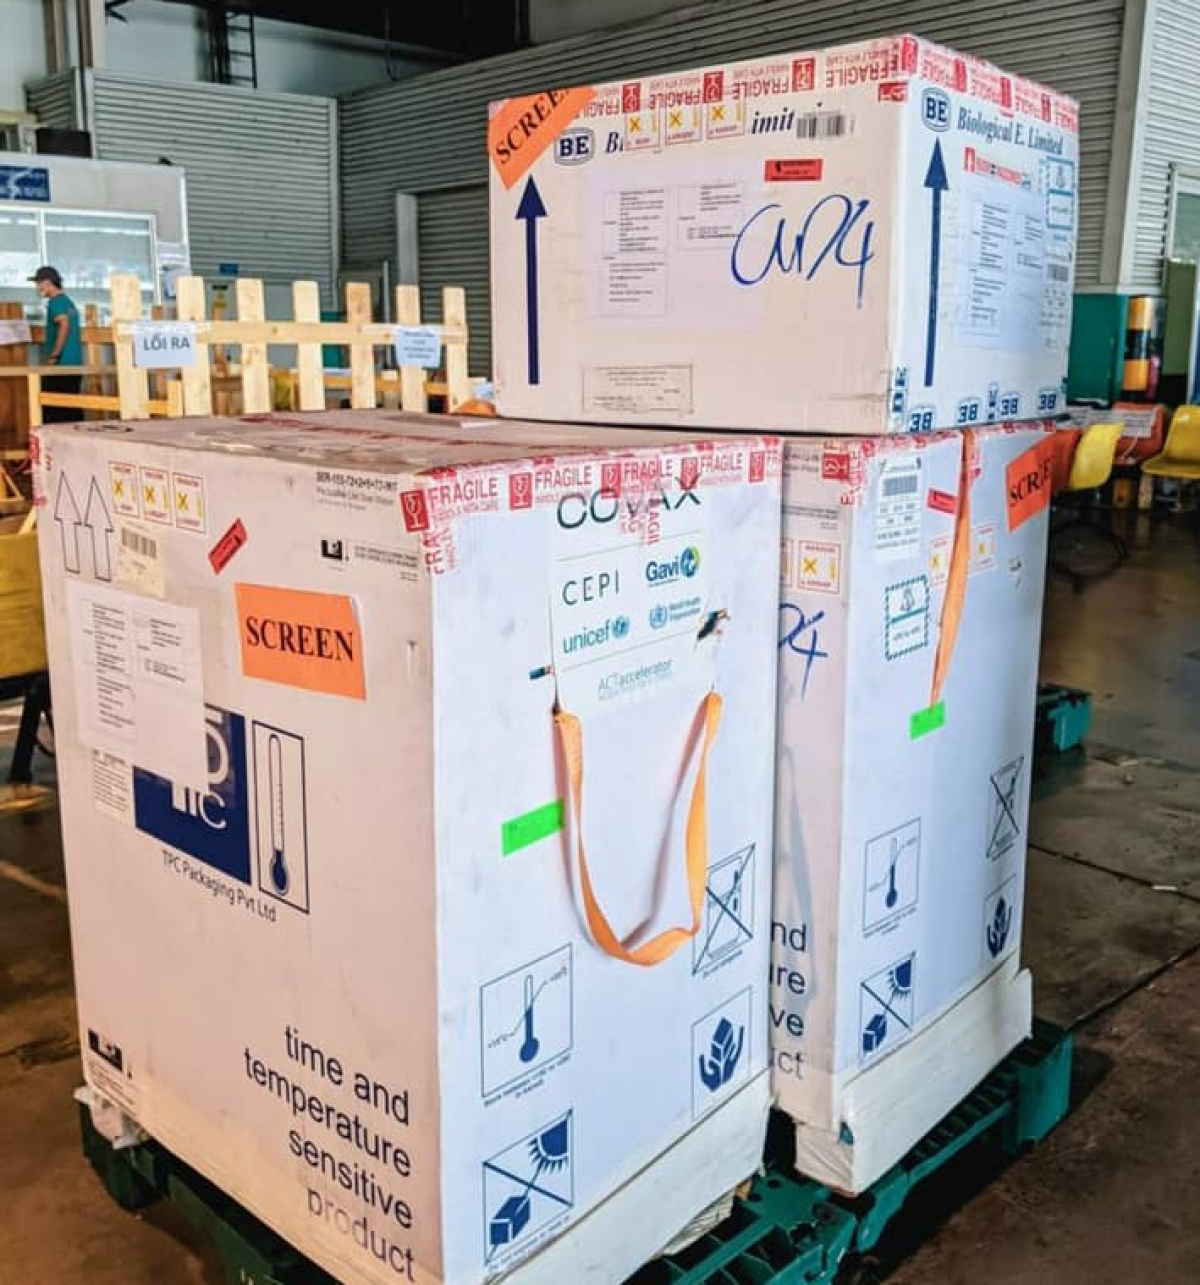 Papua New Guinea has delivered 30,000 doses of the AstraZeneca vaccine to Vietnam through COVAX